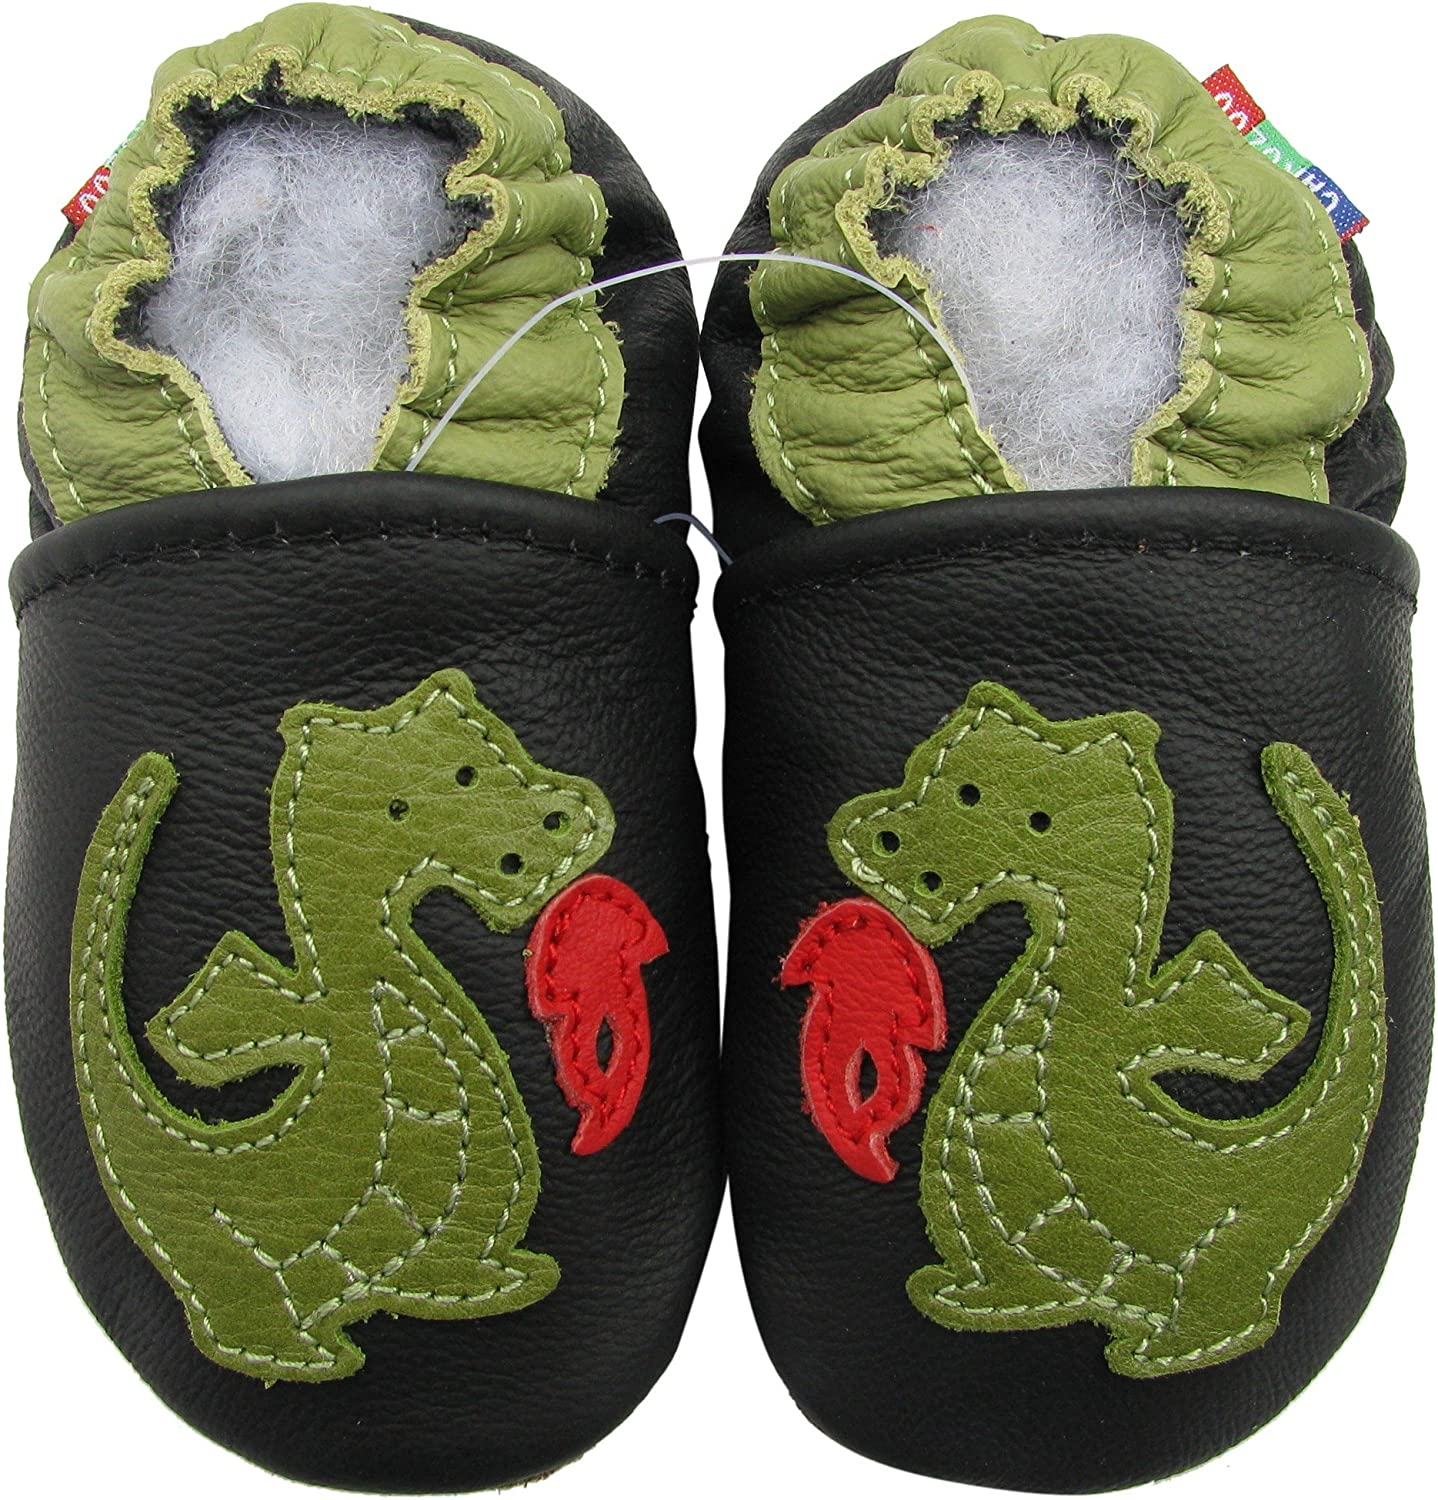 carozoo booties dark green 6-12m soft sole leather baby shoes